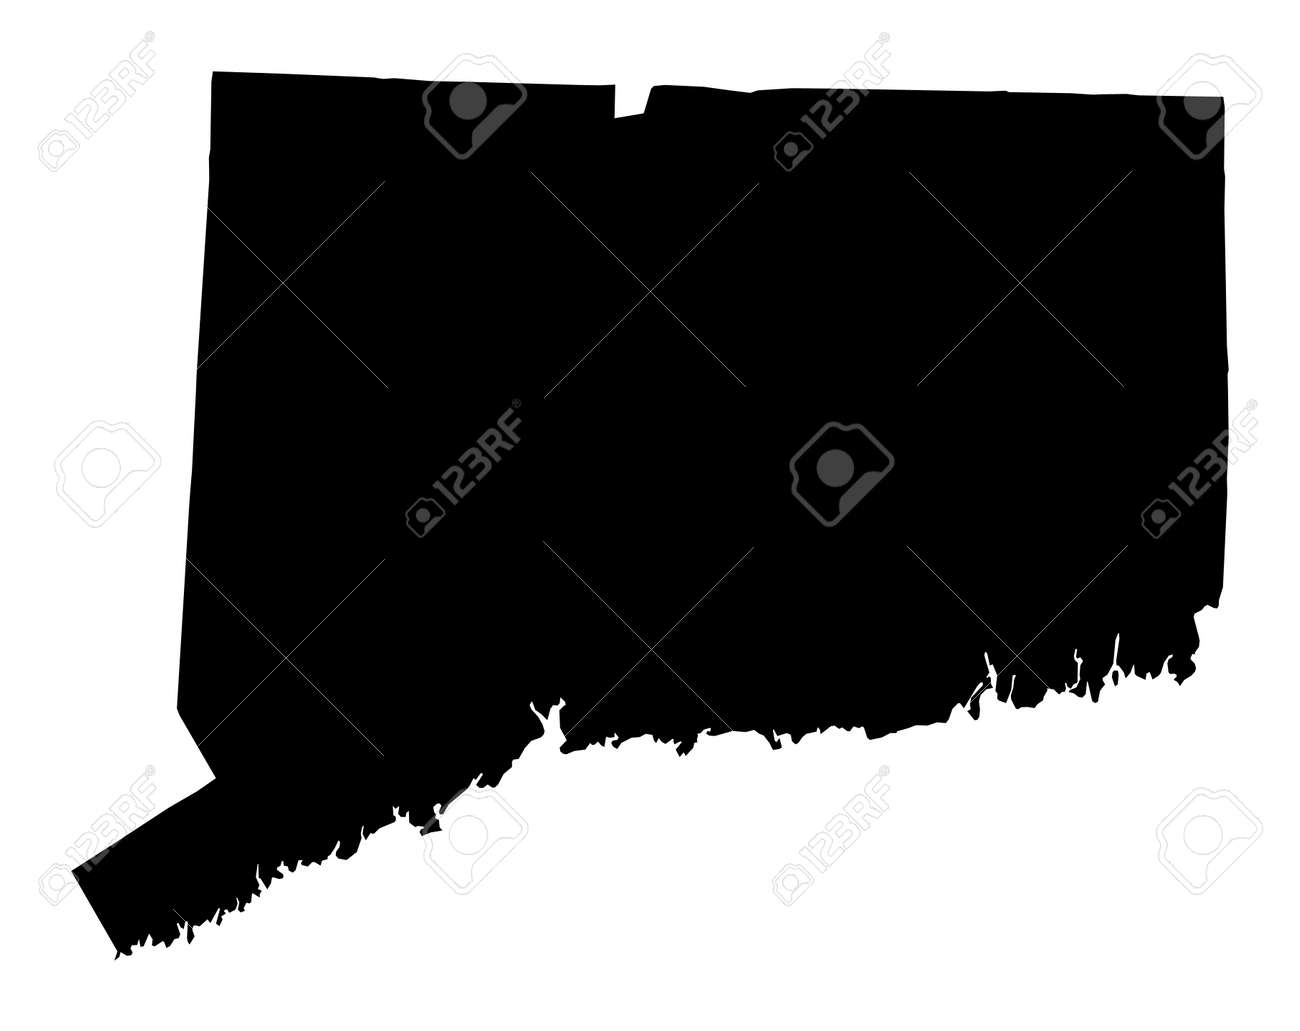 Detailed Isolated Bw Map Of Connecticut USA Mercator Projection - Map usa connecticut